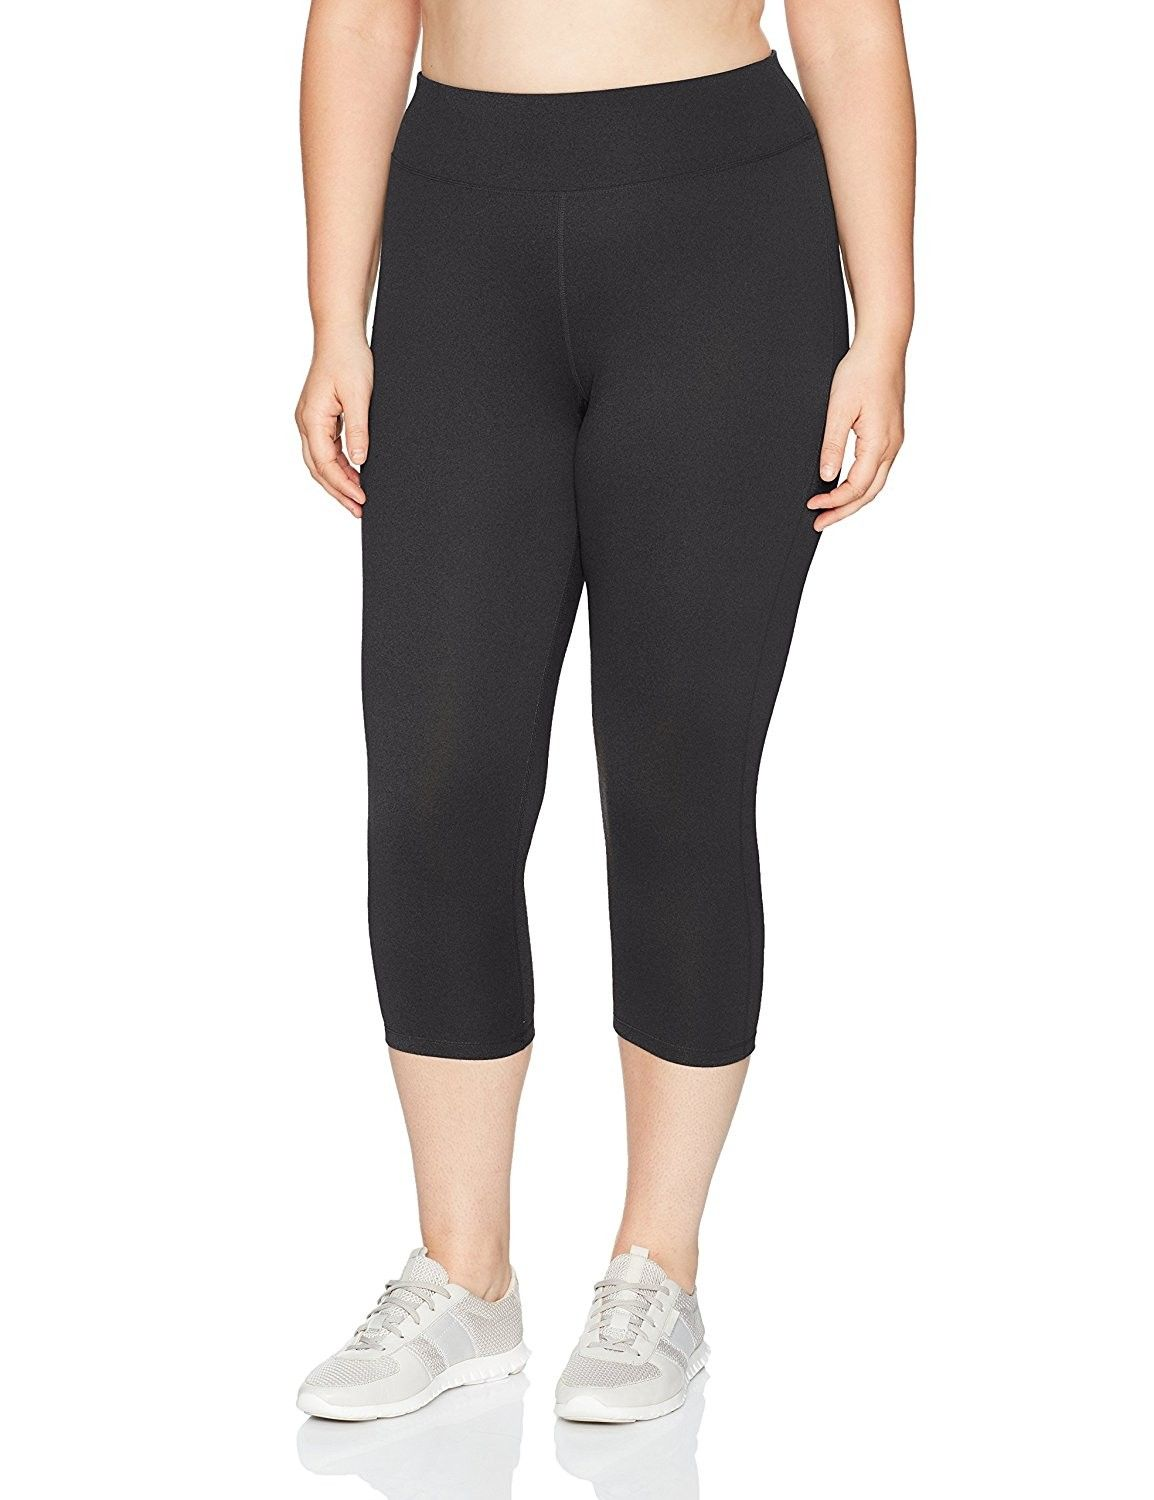 345ee114ad794 Women's Plus Size Active Stretch Capri - Black - CE17AYZ6QL4,Women's  Clothing, Active, Active Pants #women #clothing #fashion #style #sexy  #outfits #Active ...